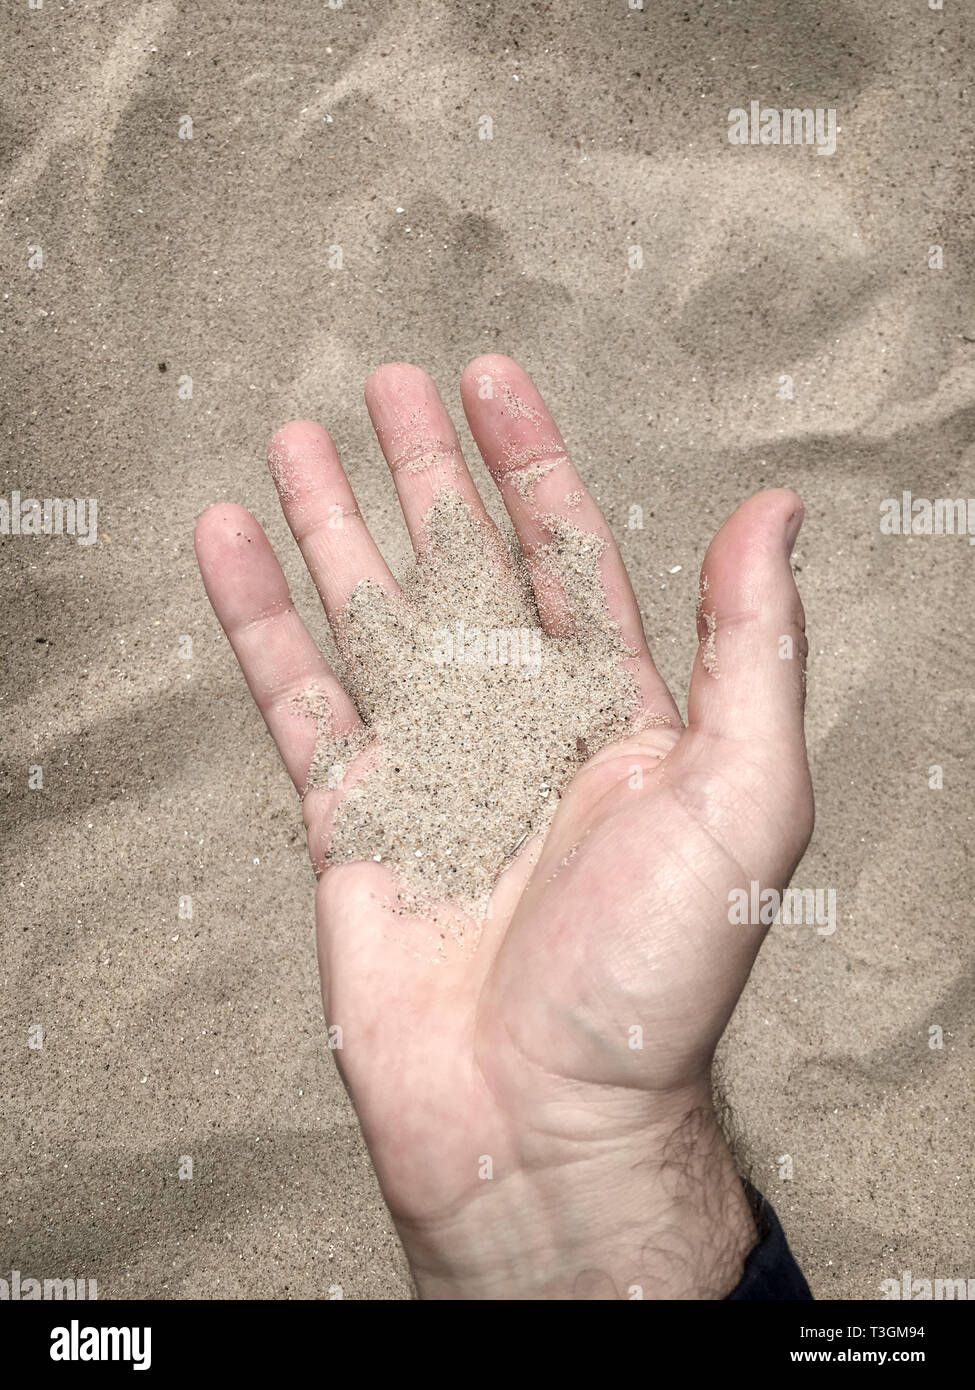 Man having sand in his open hand - Stock Image